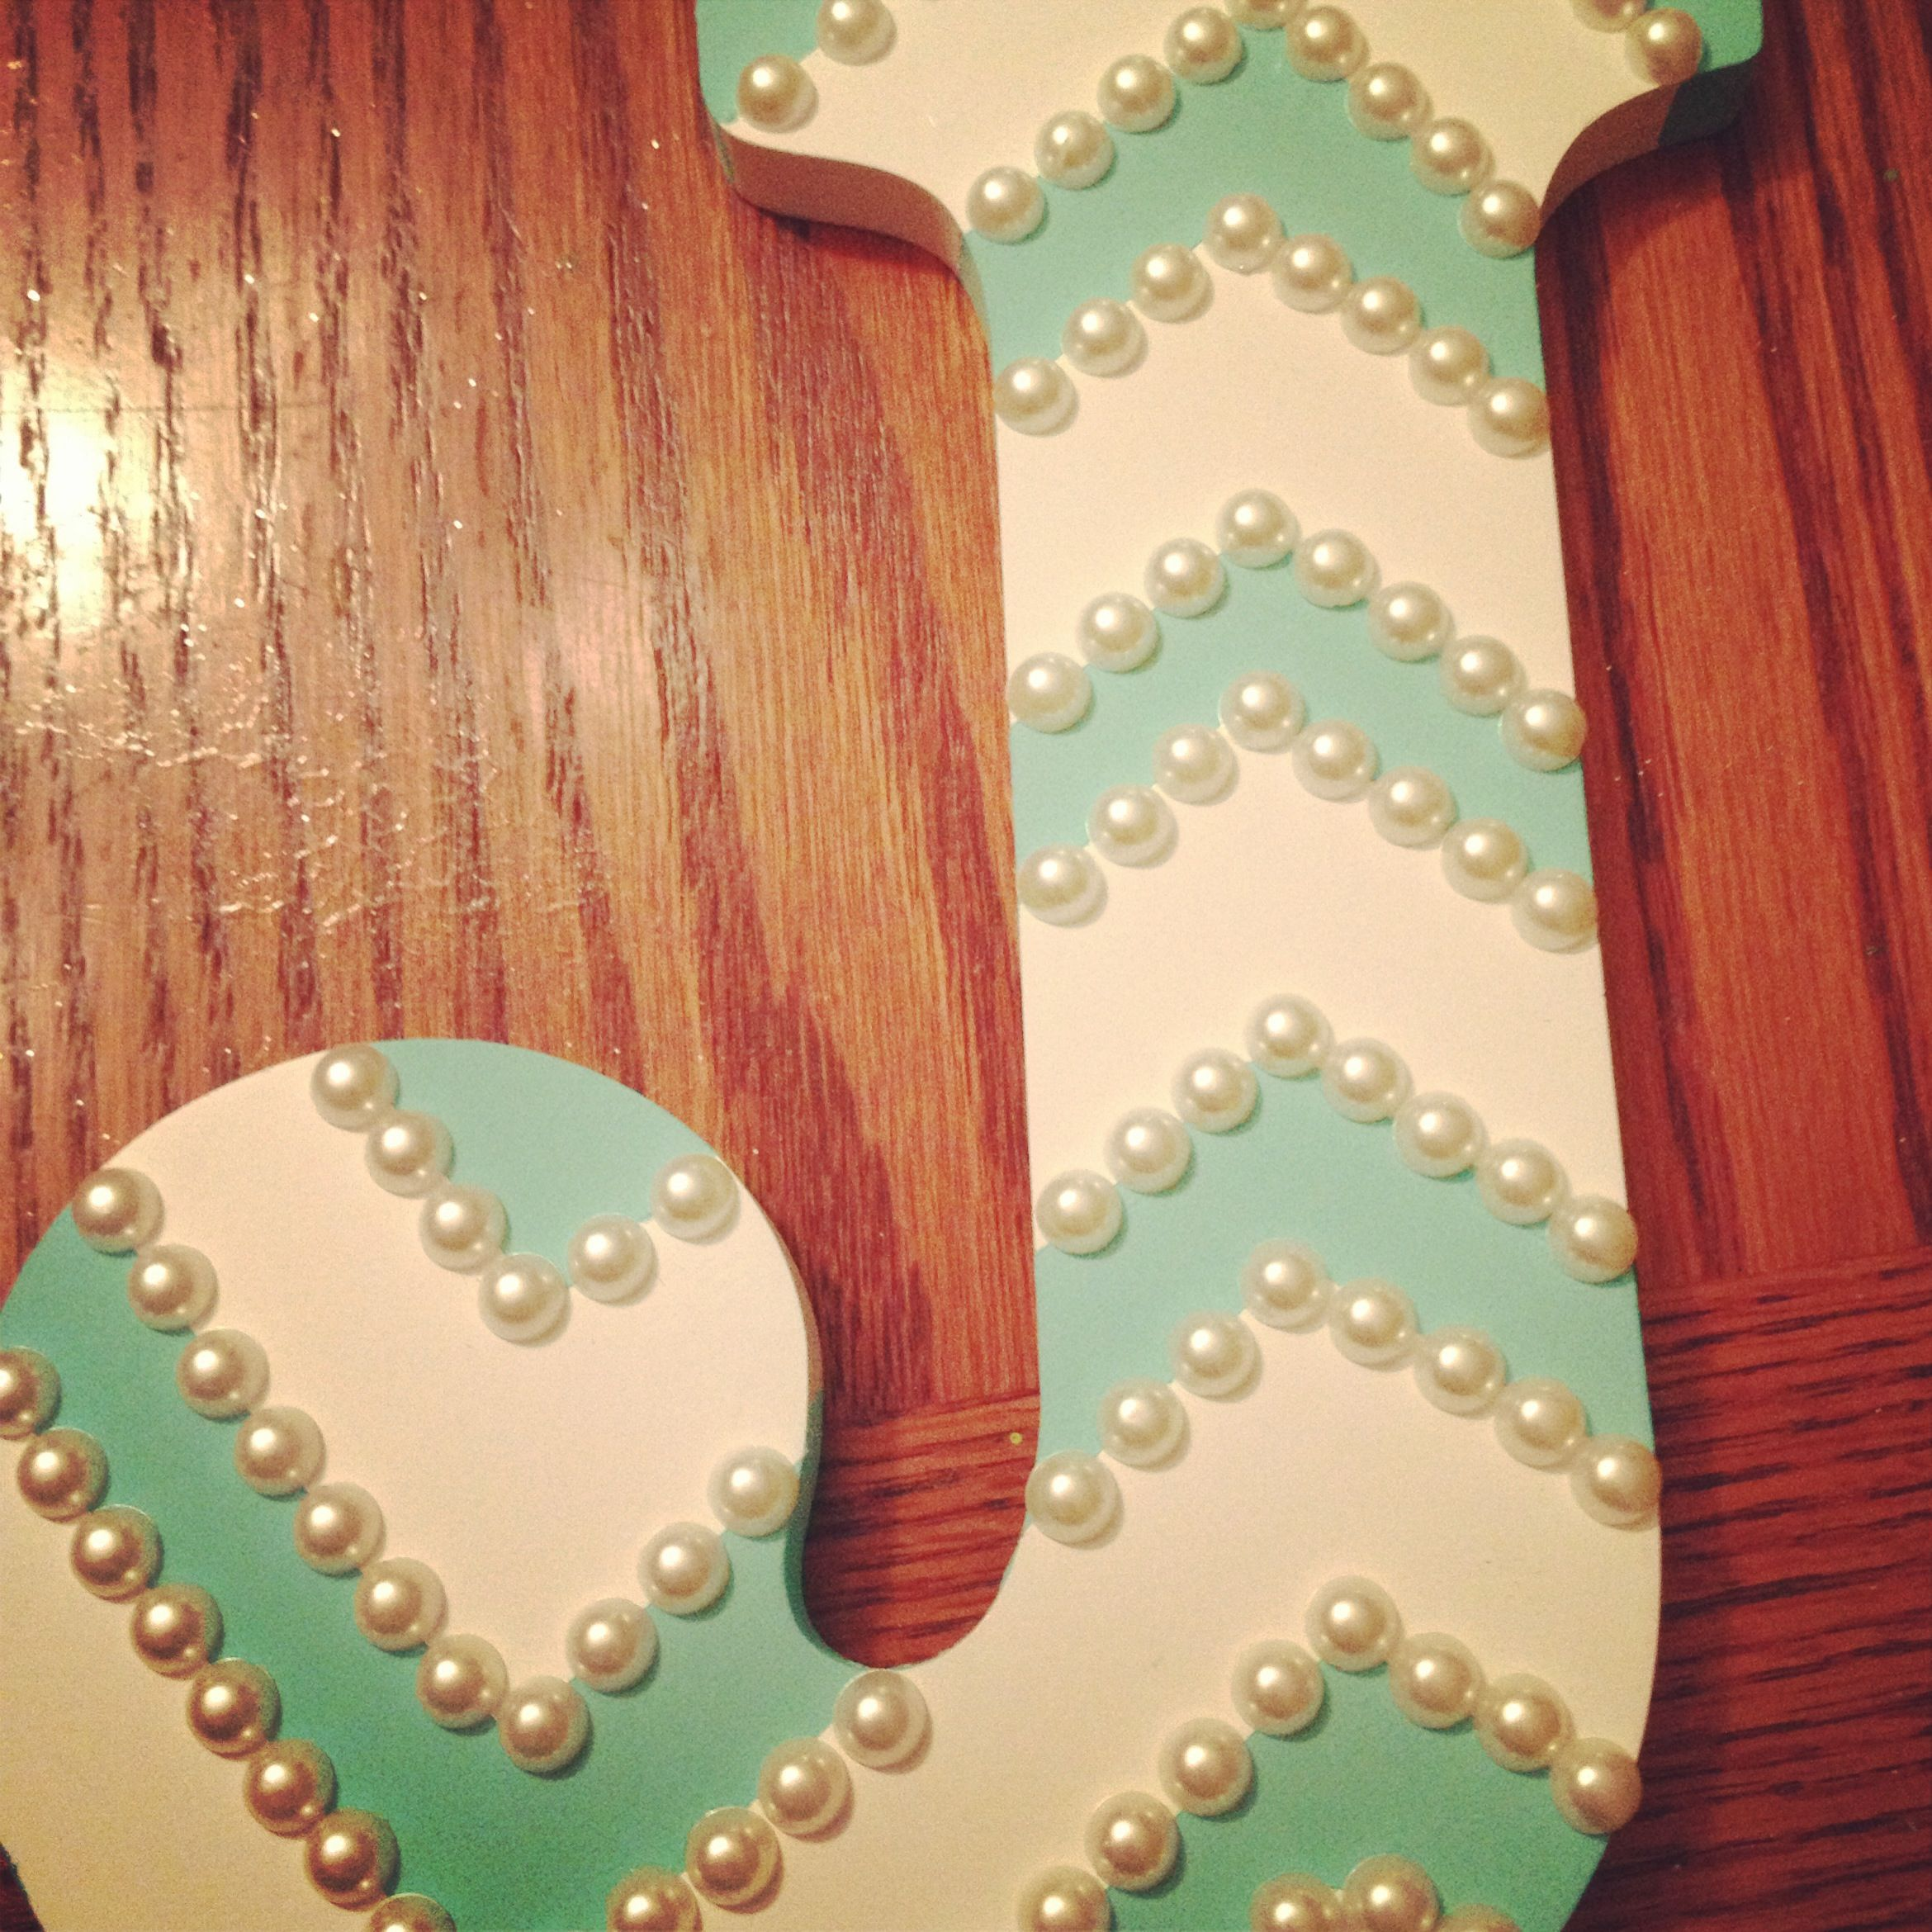 wooden letter painters tape aqua paint and pearls